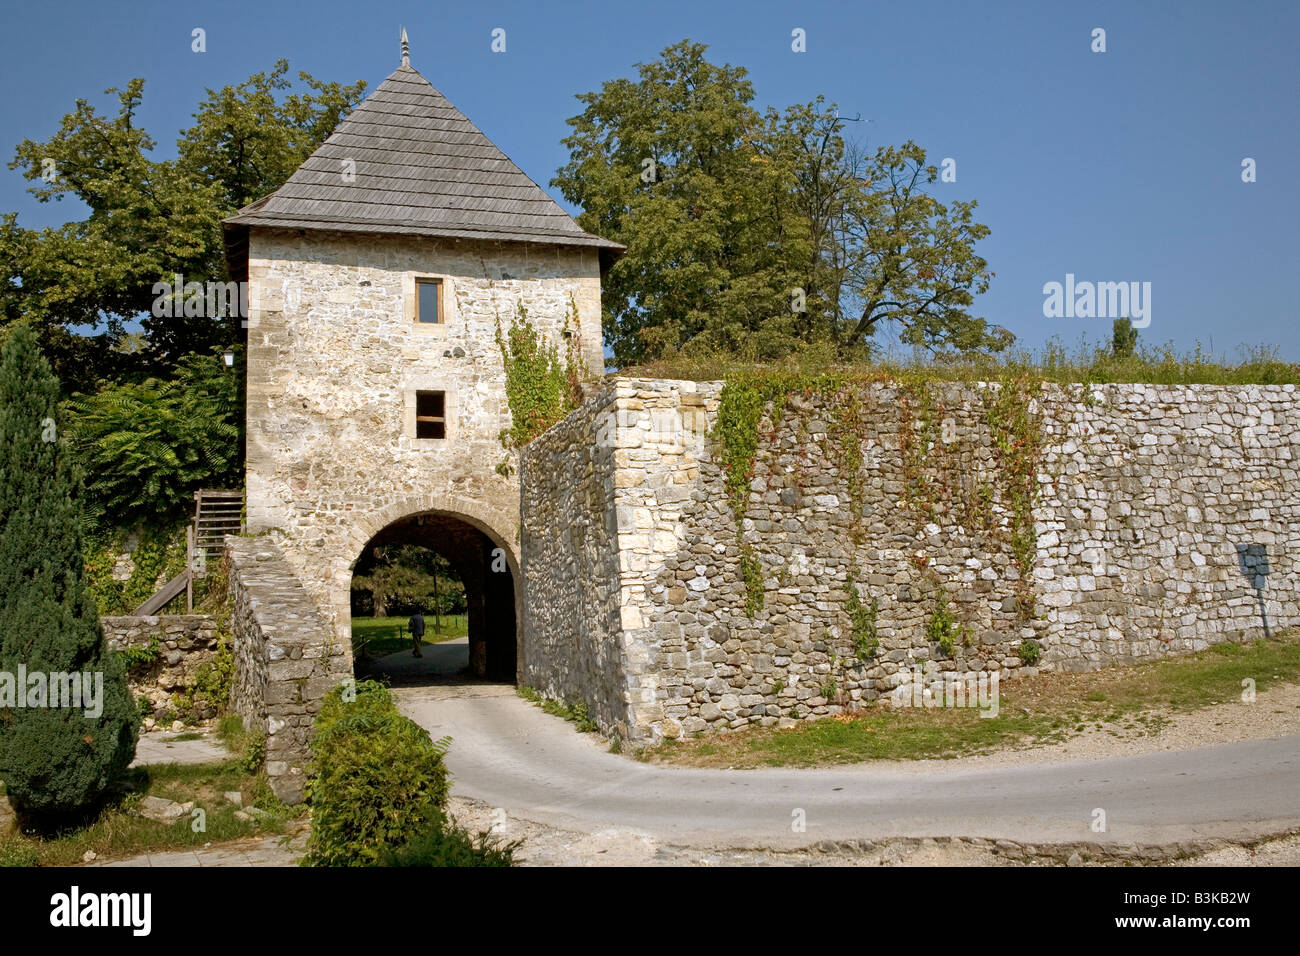 One of towers of medieval castle in Banja Luka capital of Republic of Srpska Bosnia and Herzegovina - Stock Image